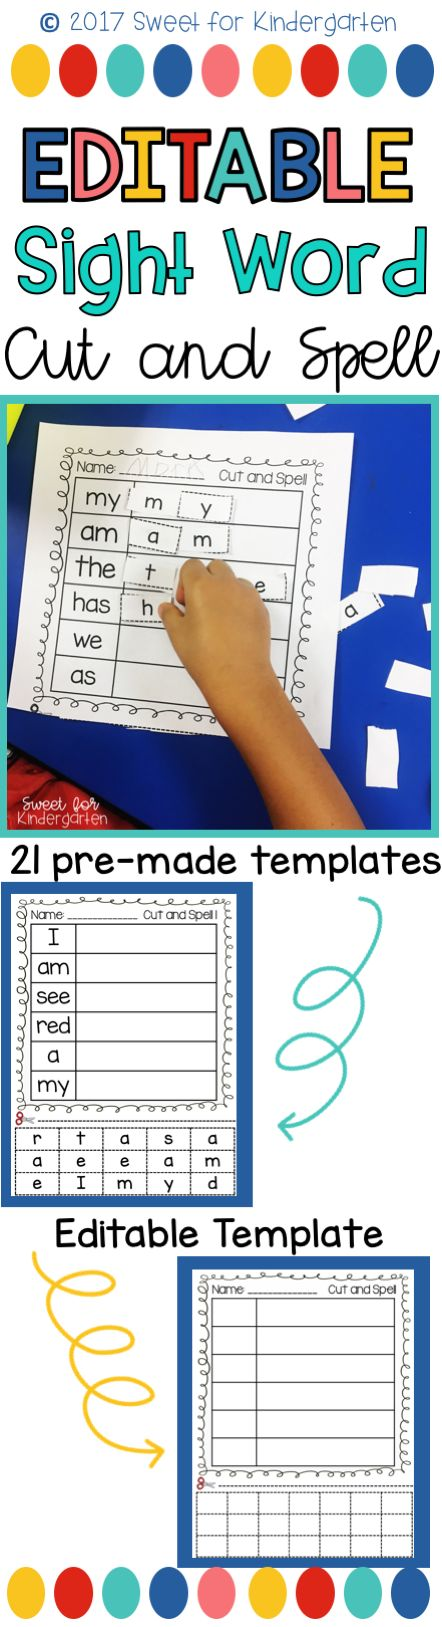 Editable Sight Word Worksheets- Cut and Spell | Pinterest